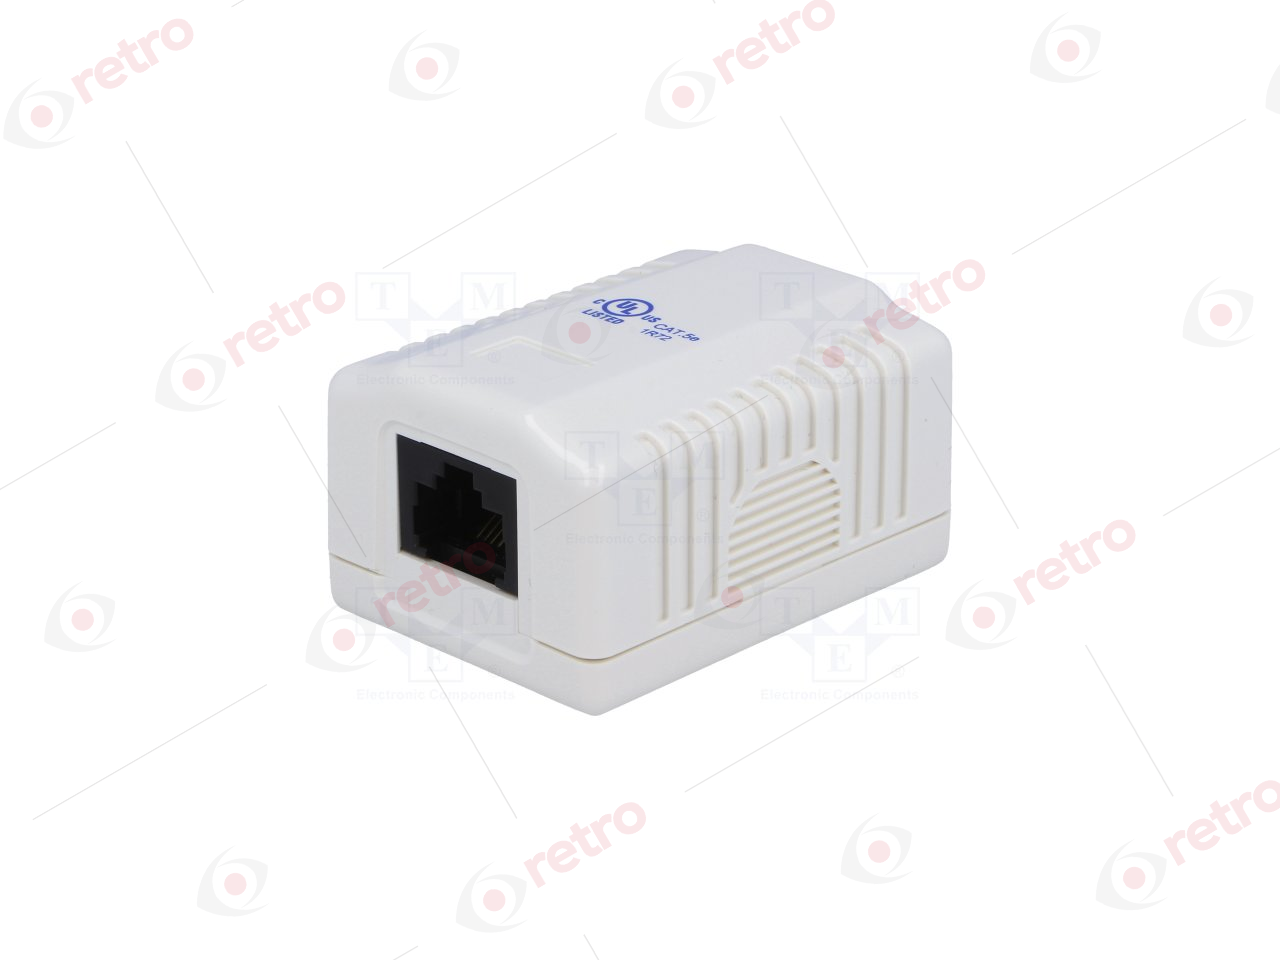 DN-93804 DIGITUS Surface mount box for faceplates 80x80 mm, color pure white French layout